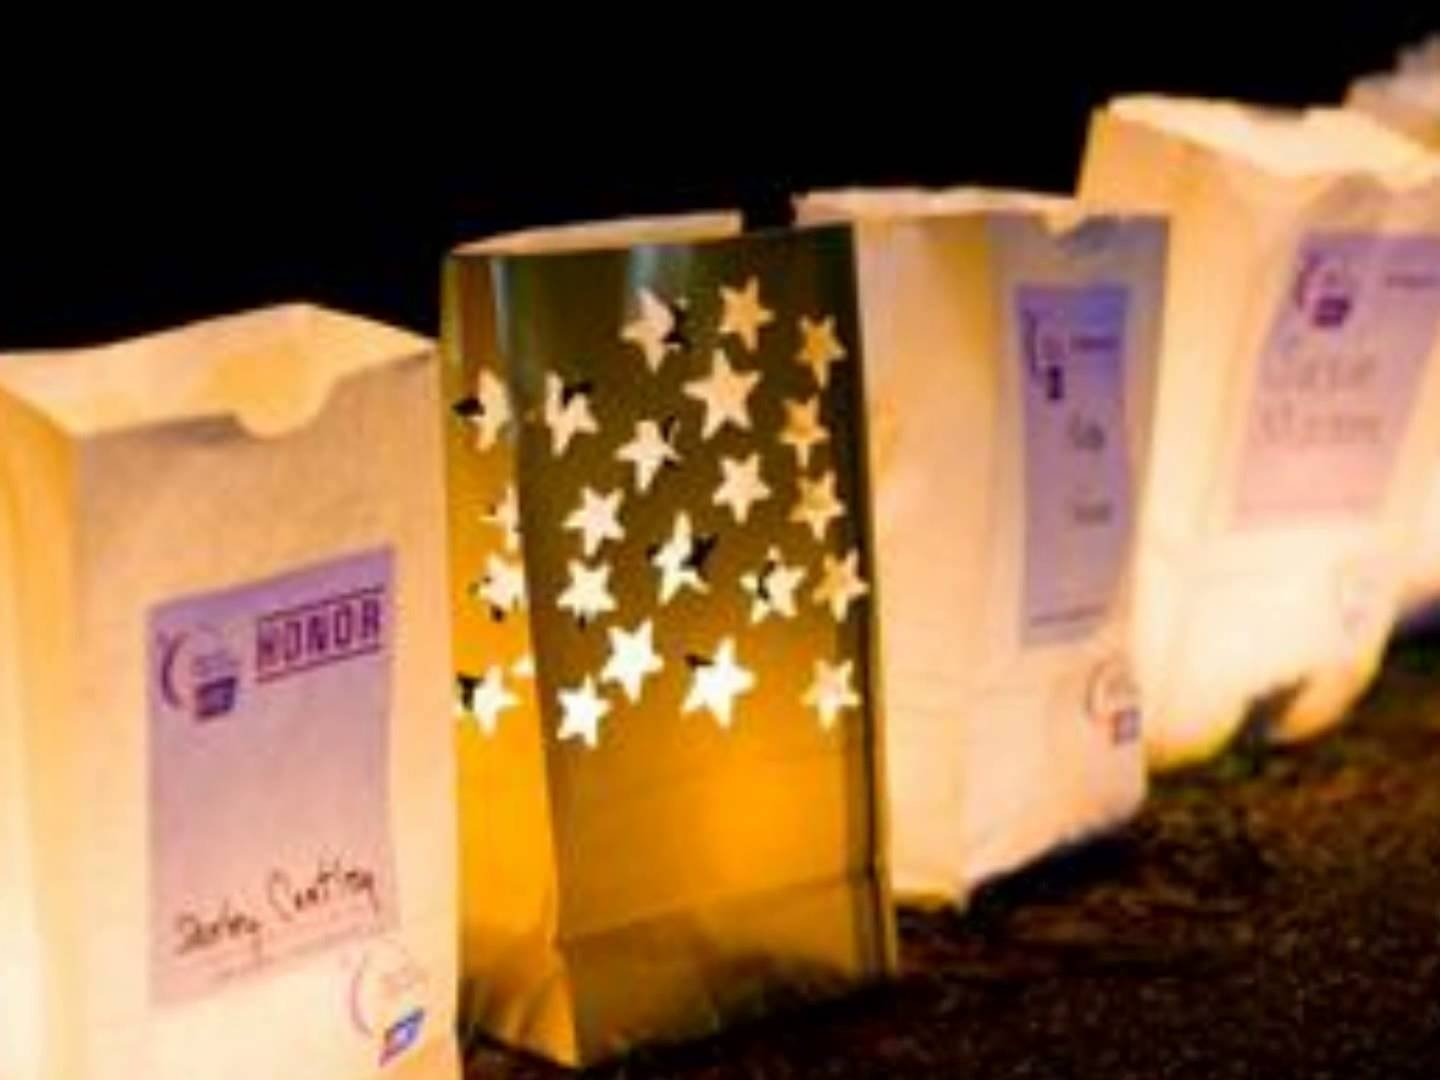 10 Most Recommended Relay For Life Luminaria Ceremony Ideas relay for life luminaria youtube 1 2020